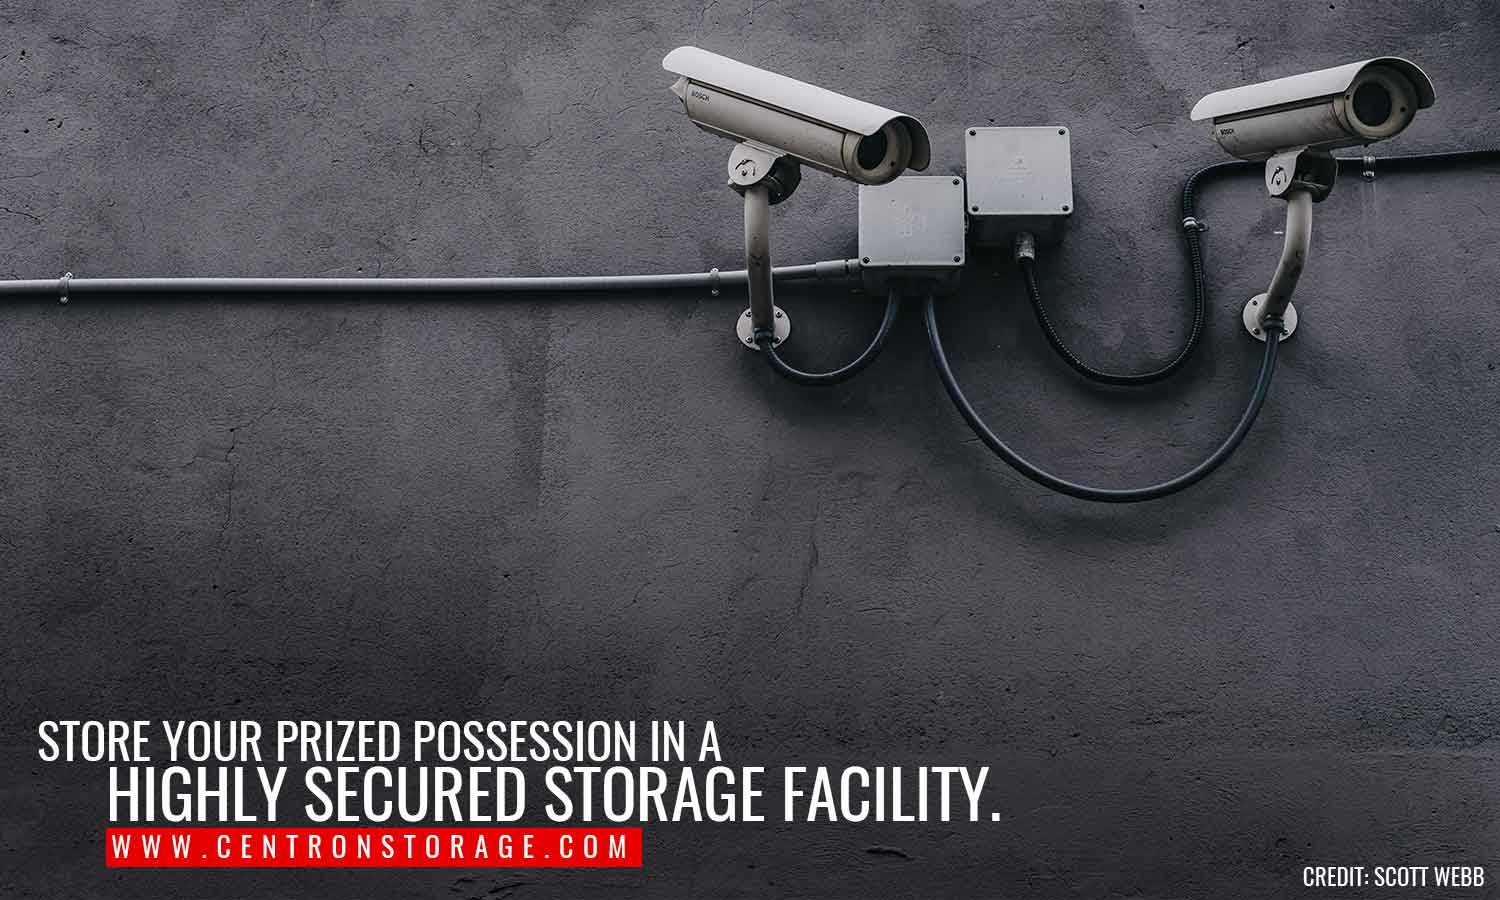 Store your prized possession in a highly secured storage facility.